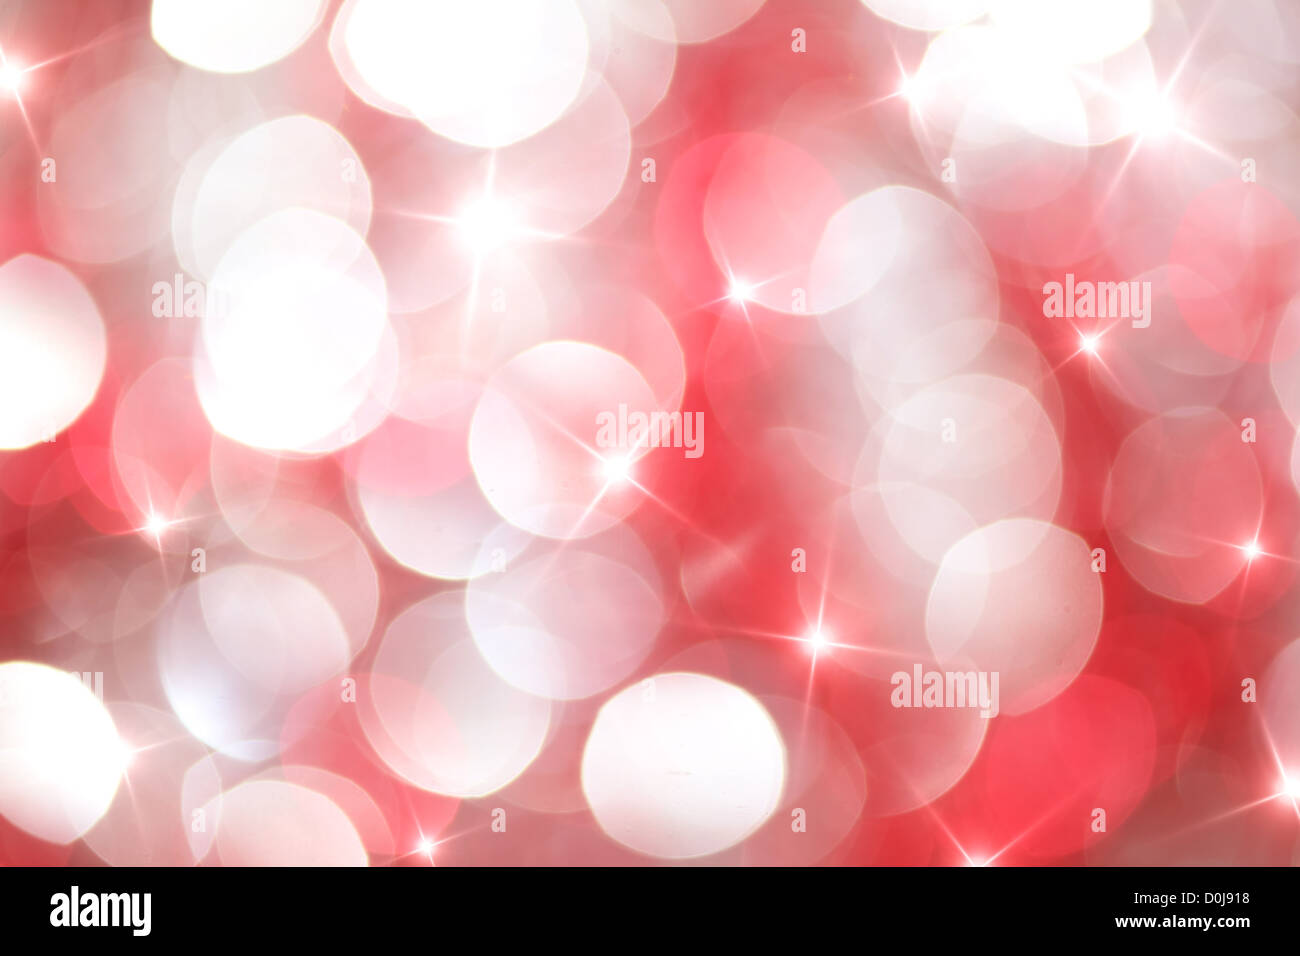 Red and white lights - Stock Image